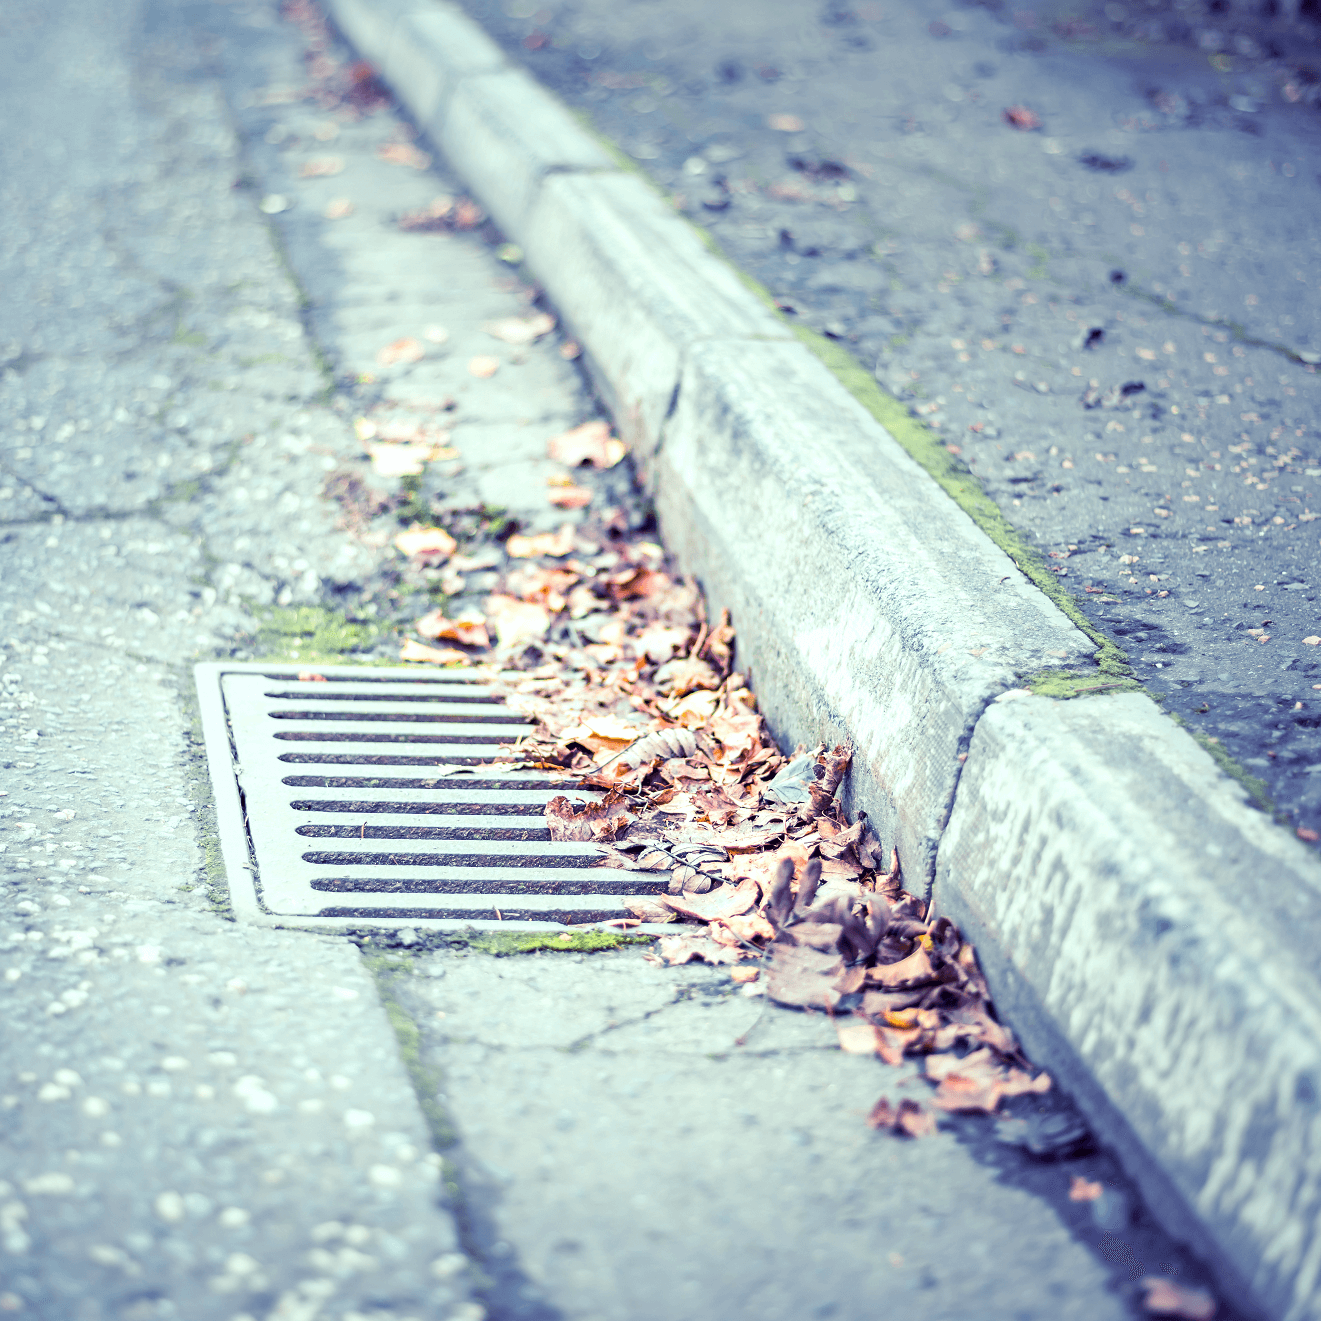 Close-up of drain covered in leaves